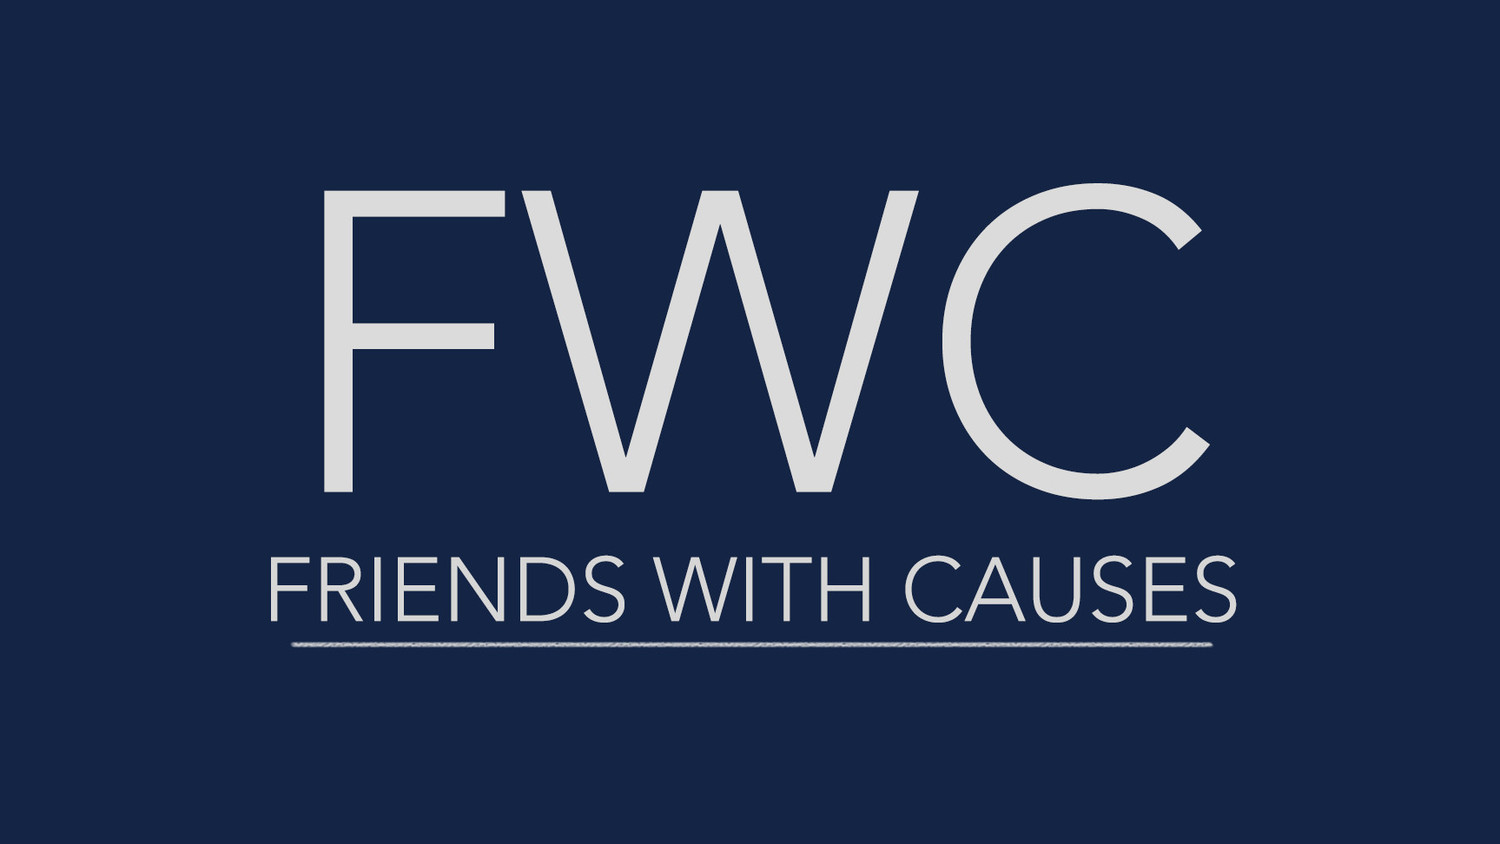 Friends With Causes